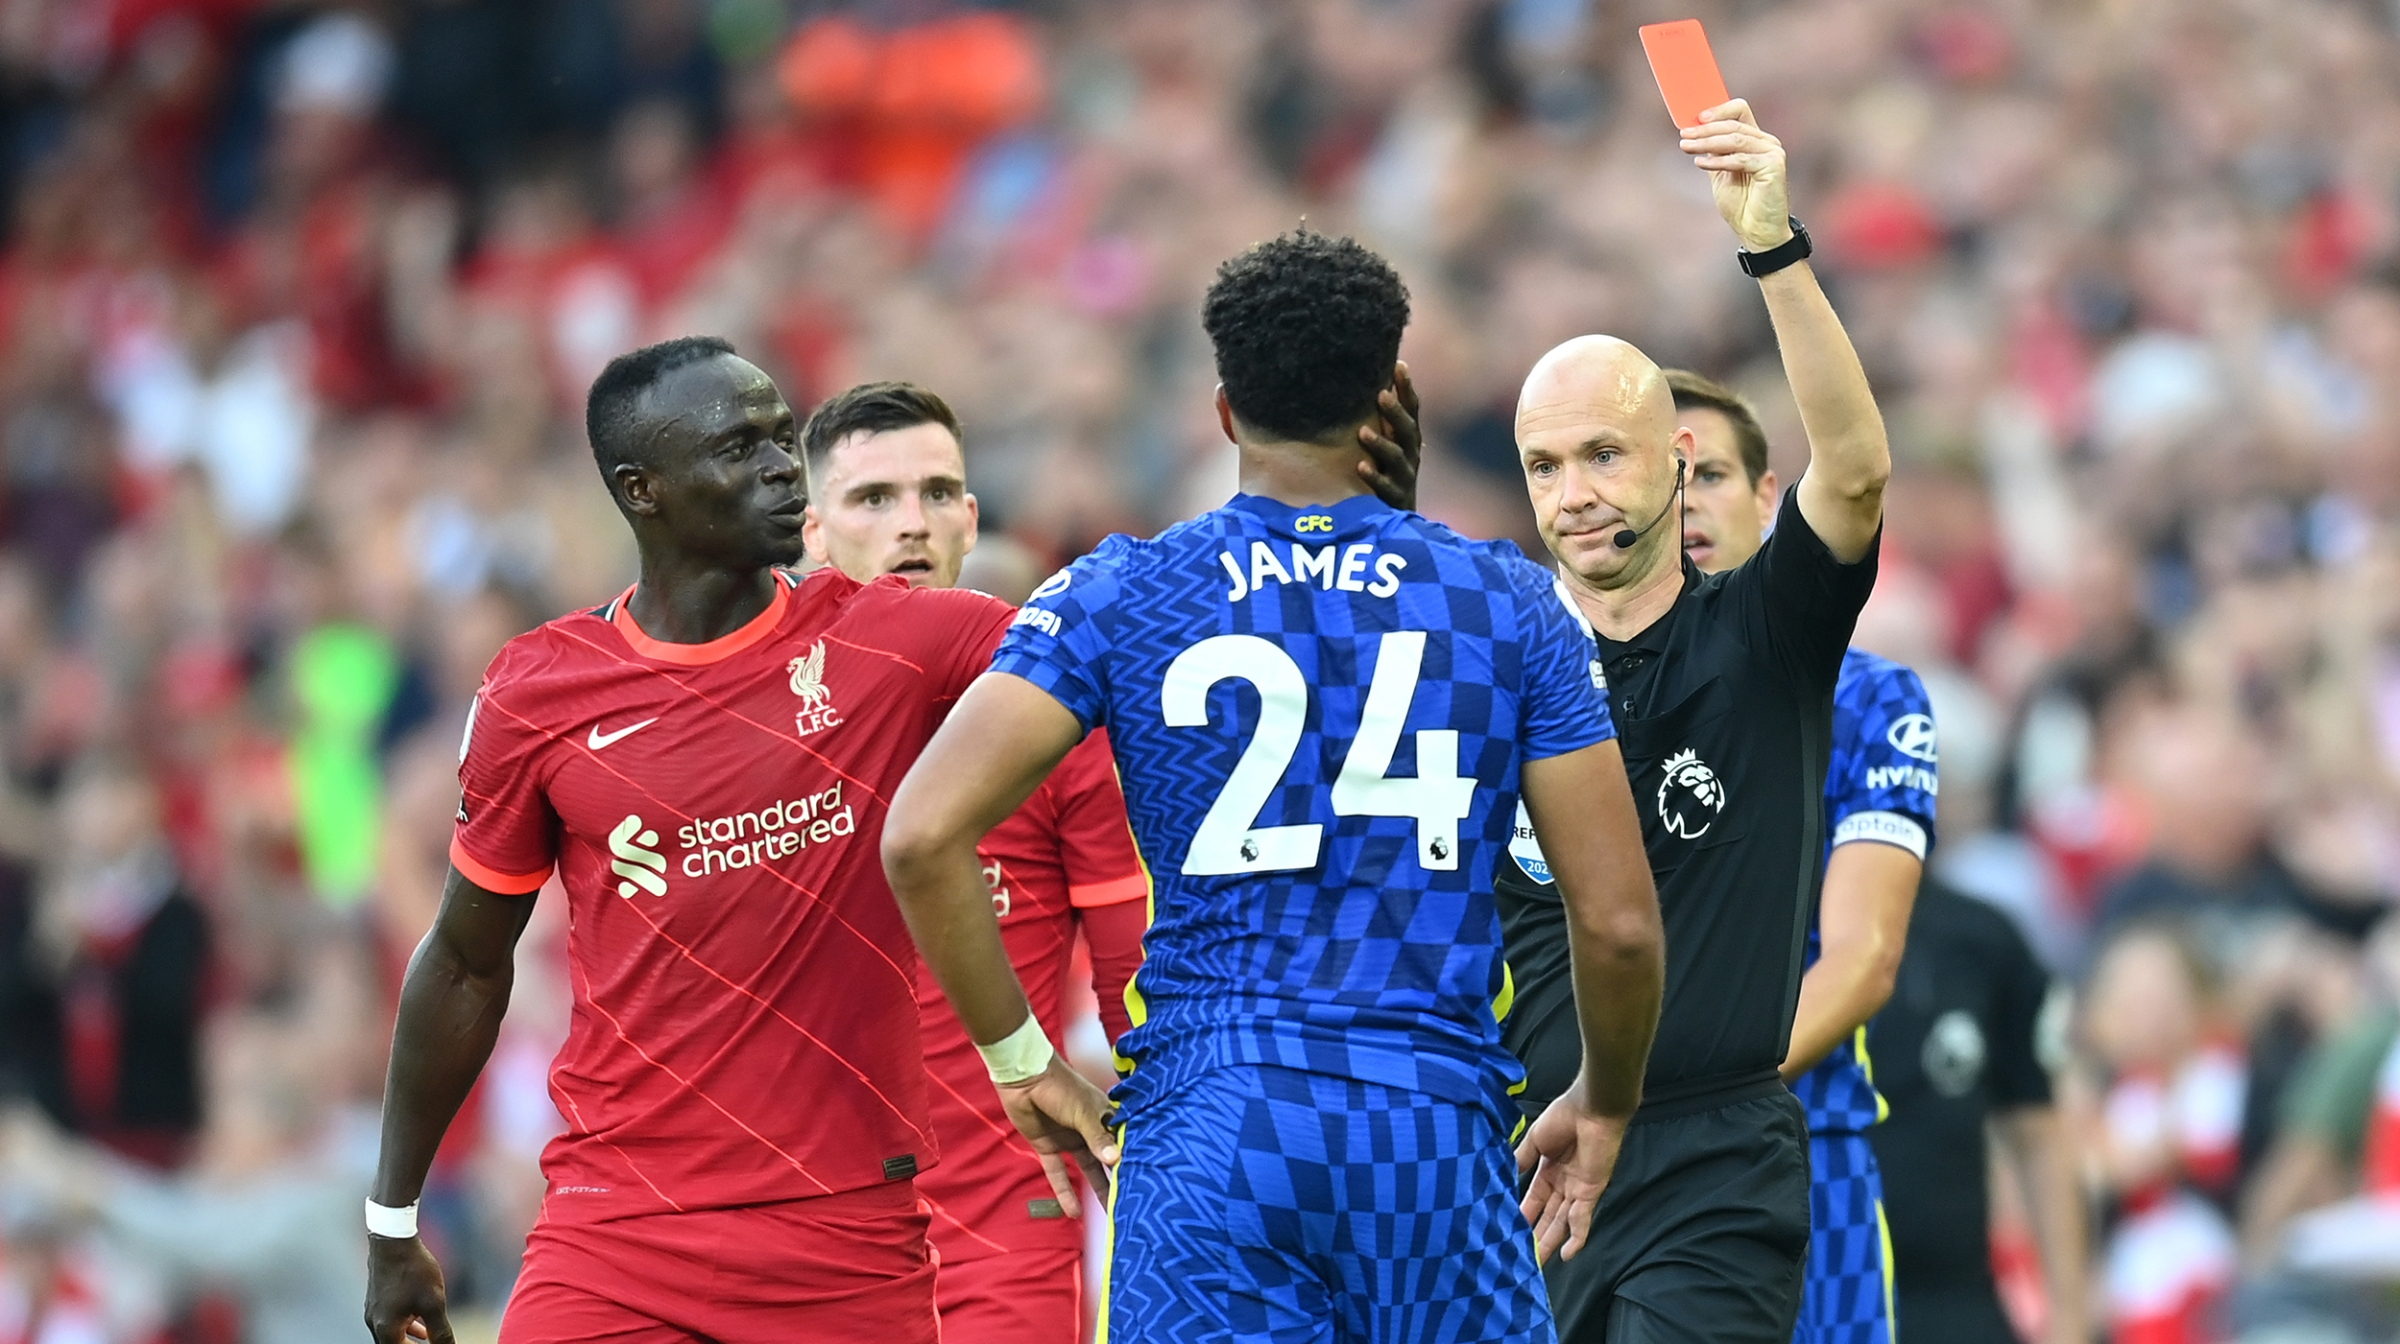 Reece James of Chelsea is shown a Red Card by Match Referee Anthony Taylor during the Premier League match between Liverpool and Chelsea at Anfield on August 28, 2021 in Liverpool, England.